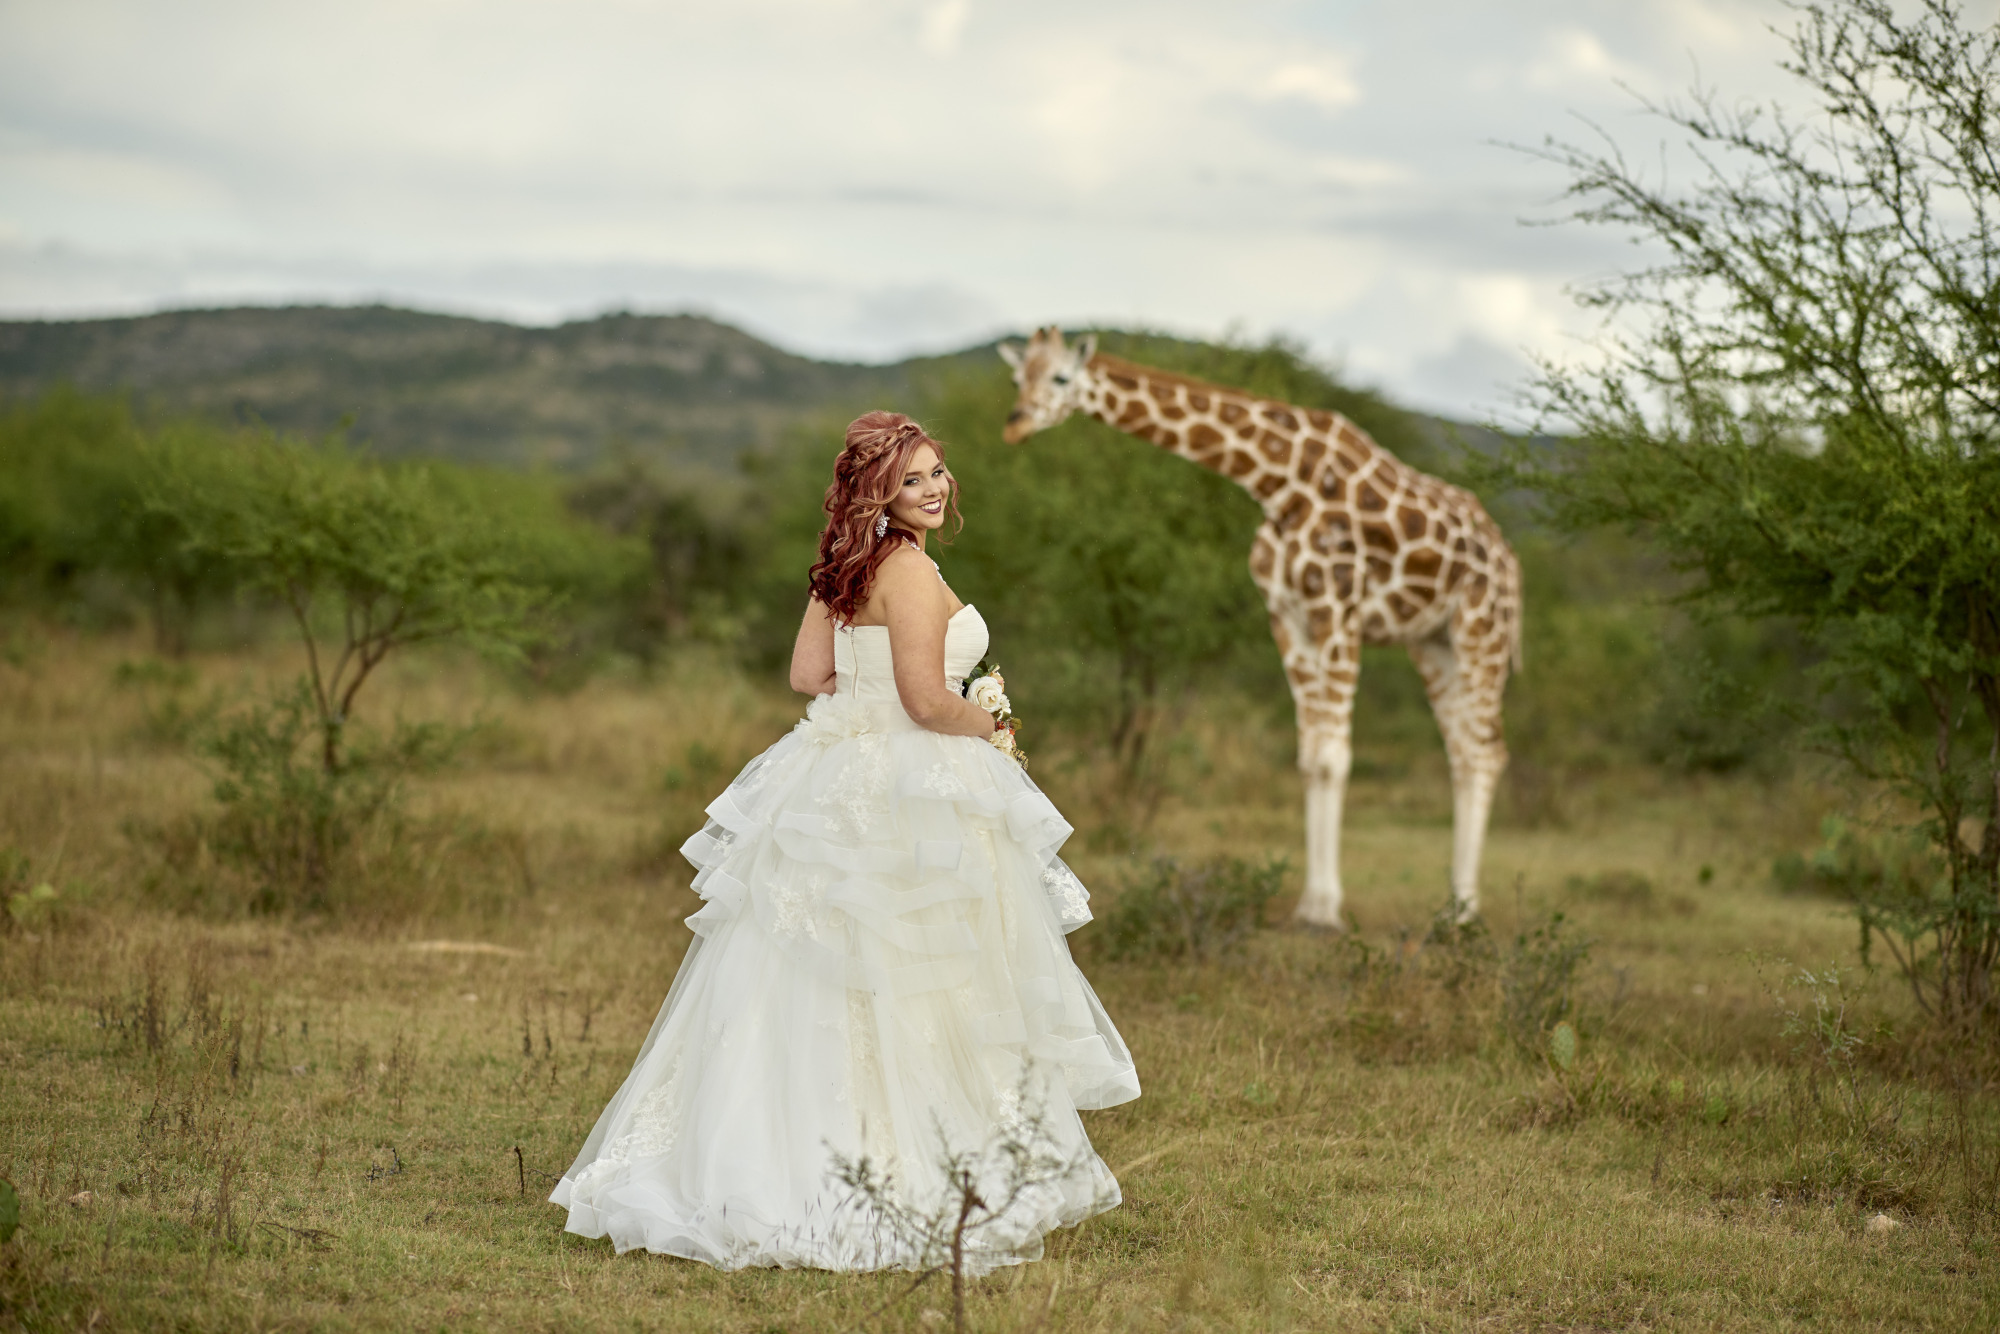 Adventure Bridal Photos - Austin Wedding Photographer - Giraffe Bridal Photos - Austin Wedding Photography Workshop